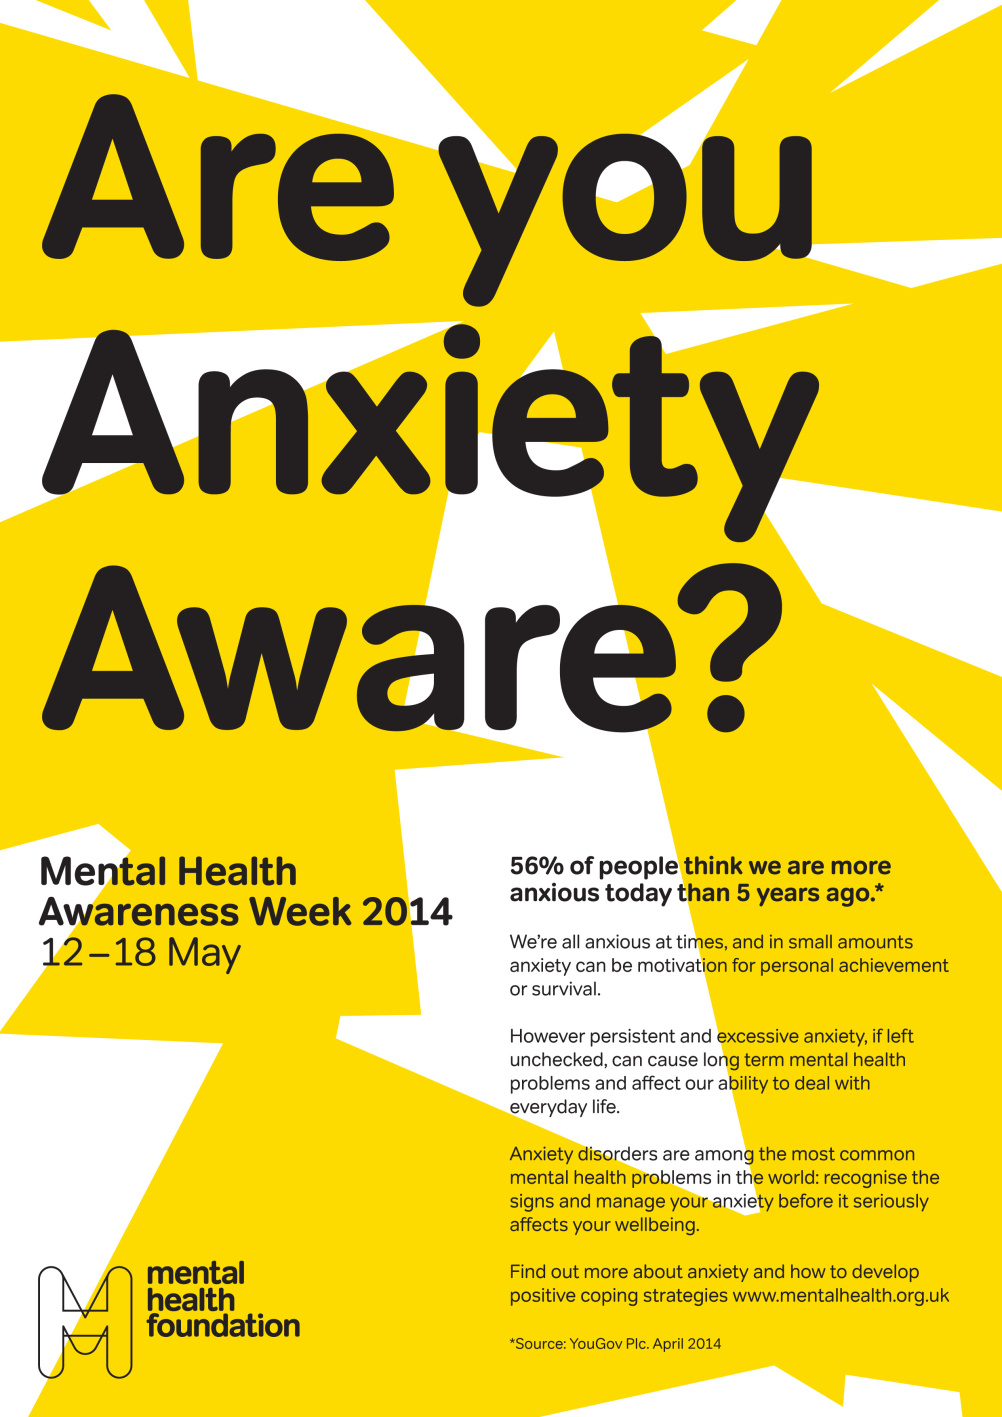 Anxiety Awareness Week poster in yellow